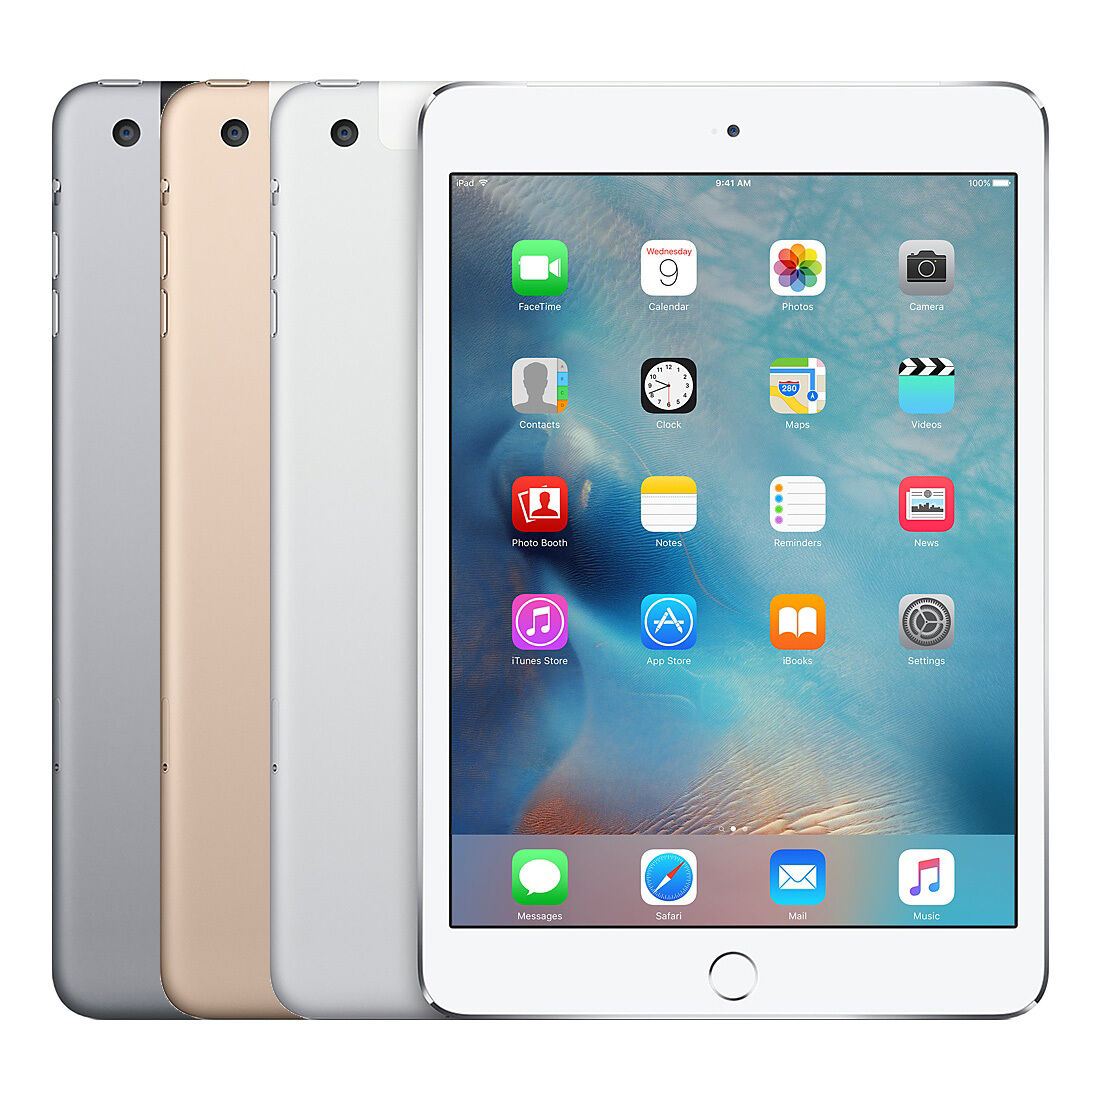 Apple iPad Mini 3 64GB iOS WiFi Verizon GSM Unlocked 3rd Generation Tablet